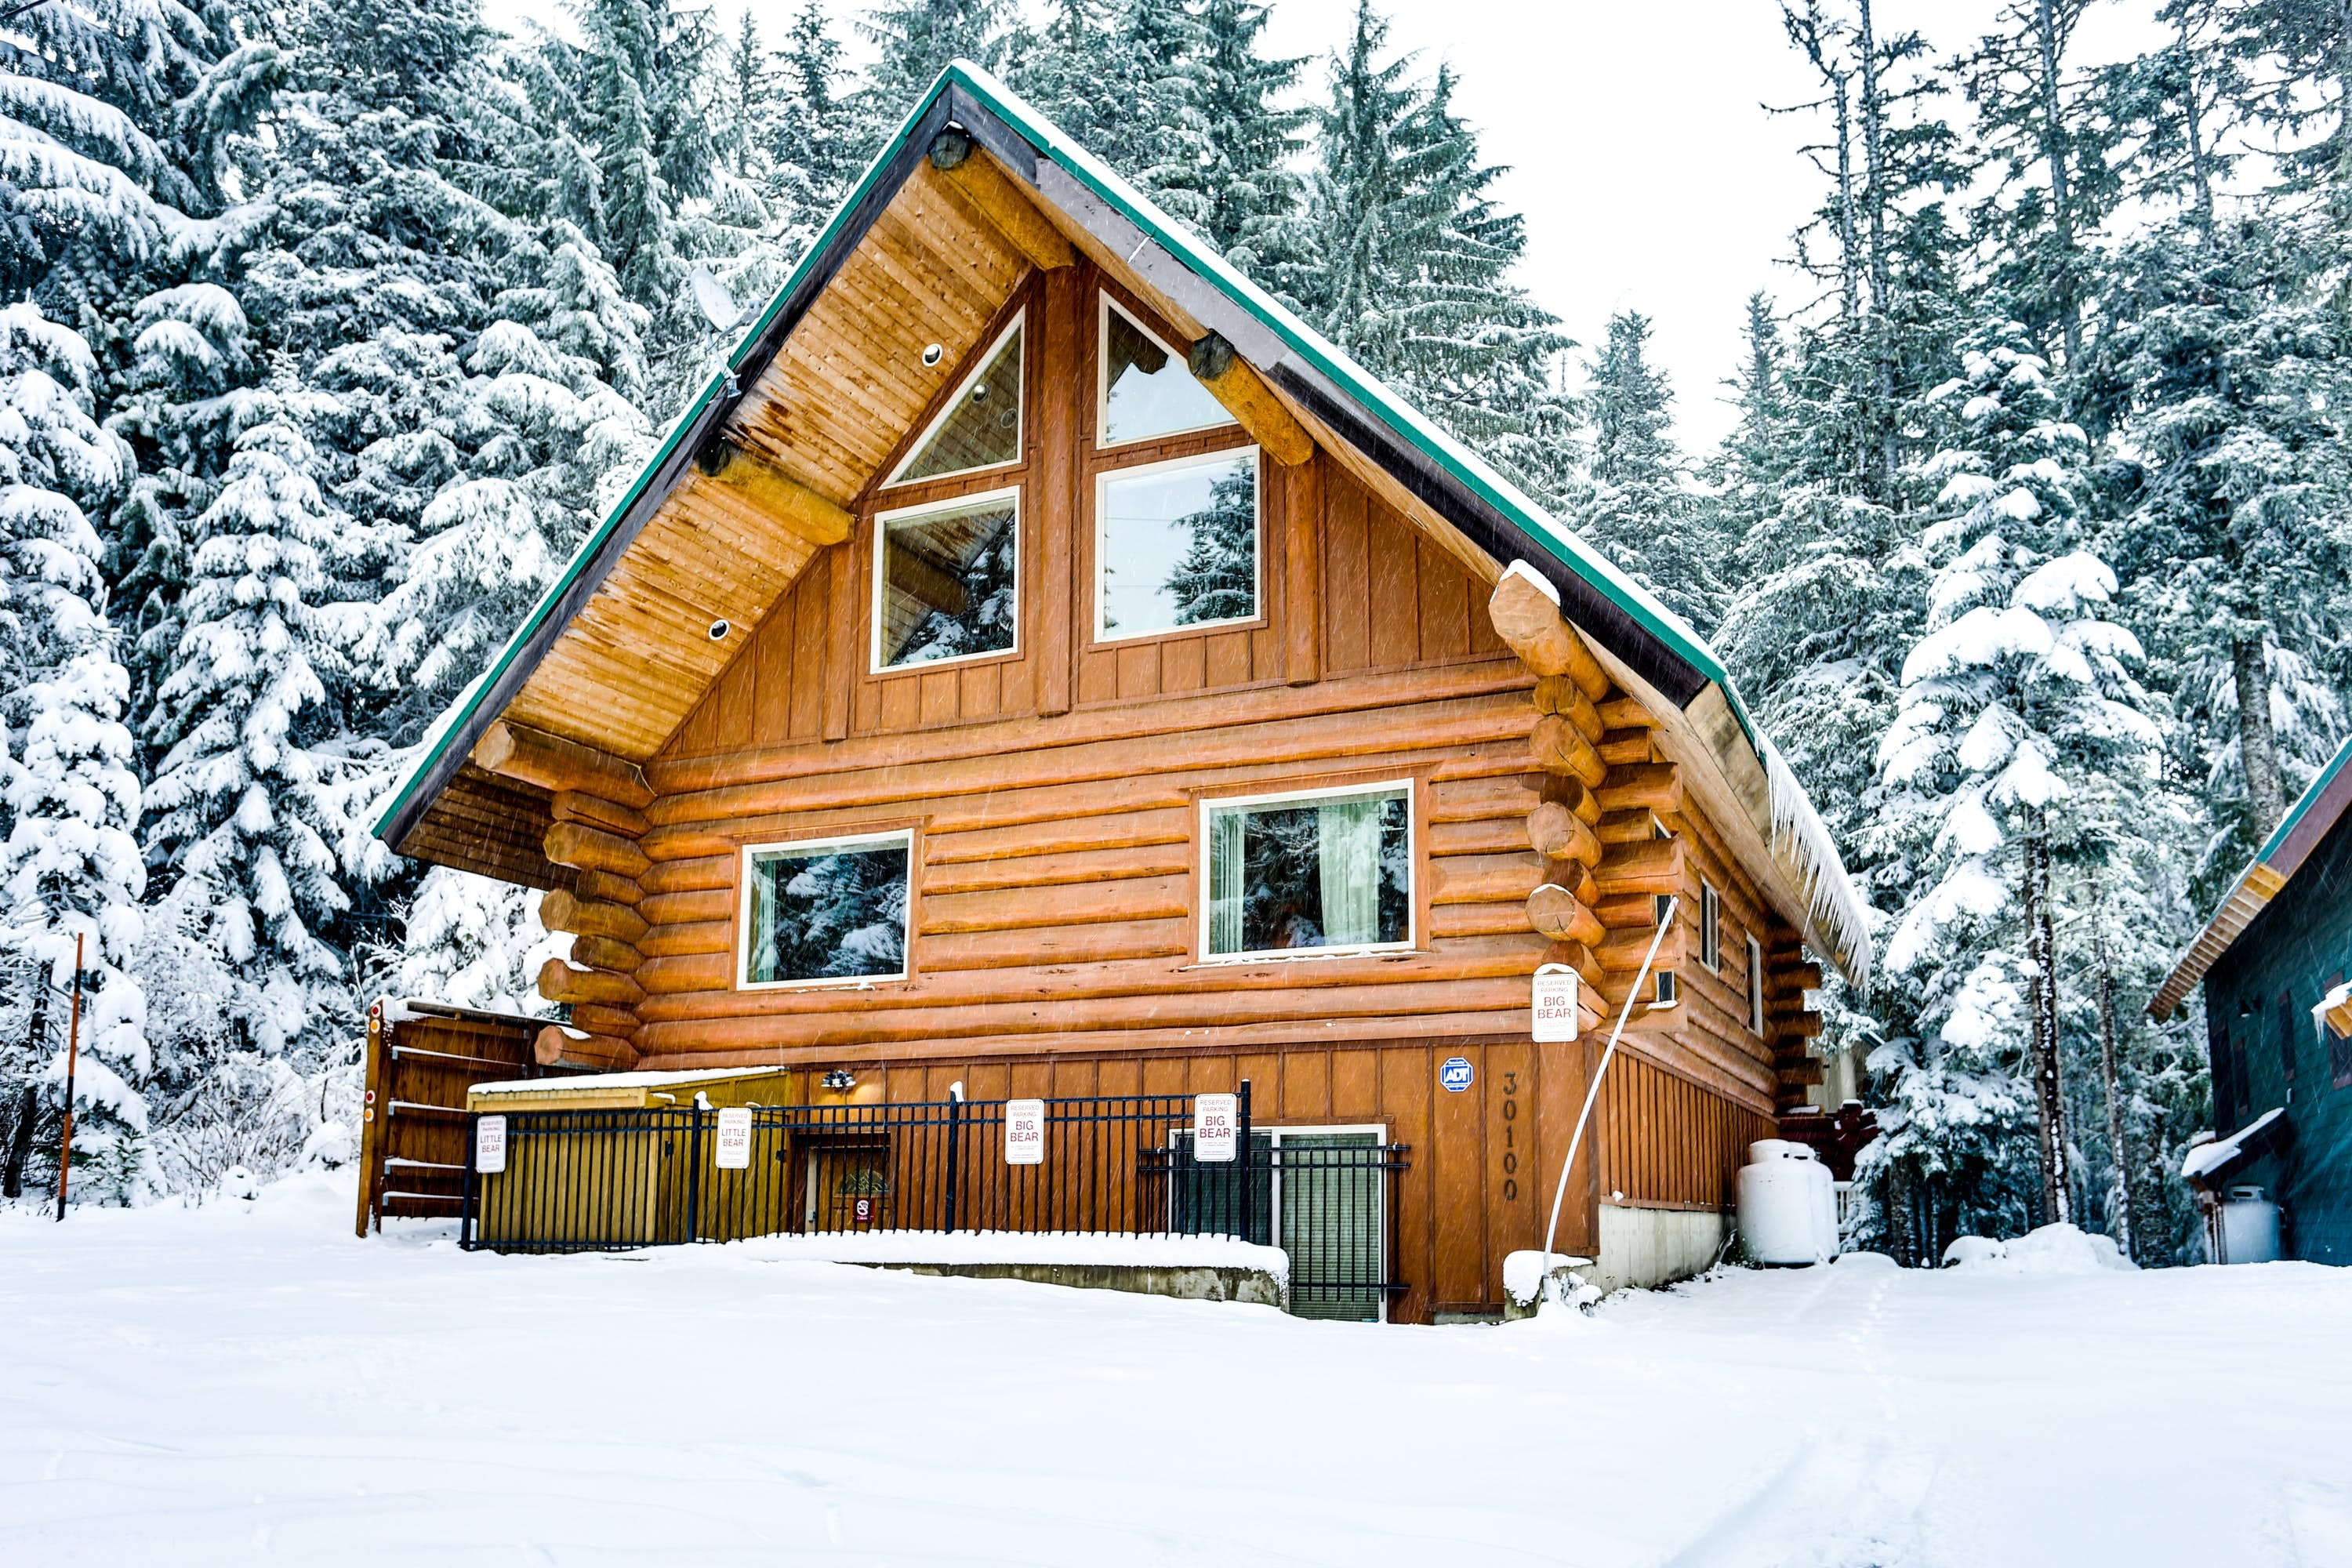 A cabin in the snow in Government Camp, Oregon